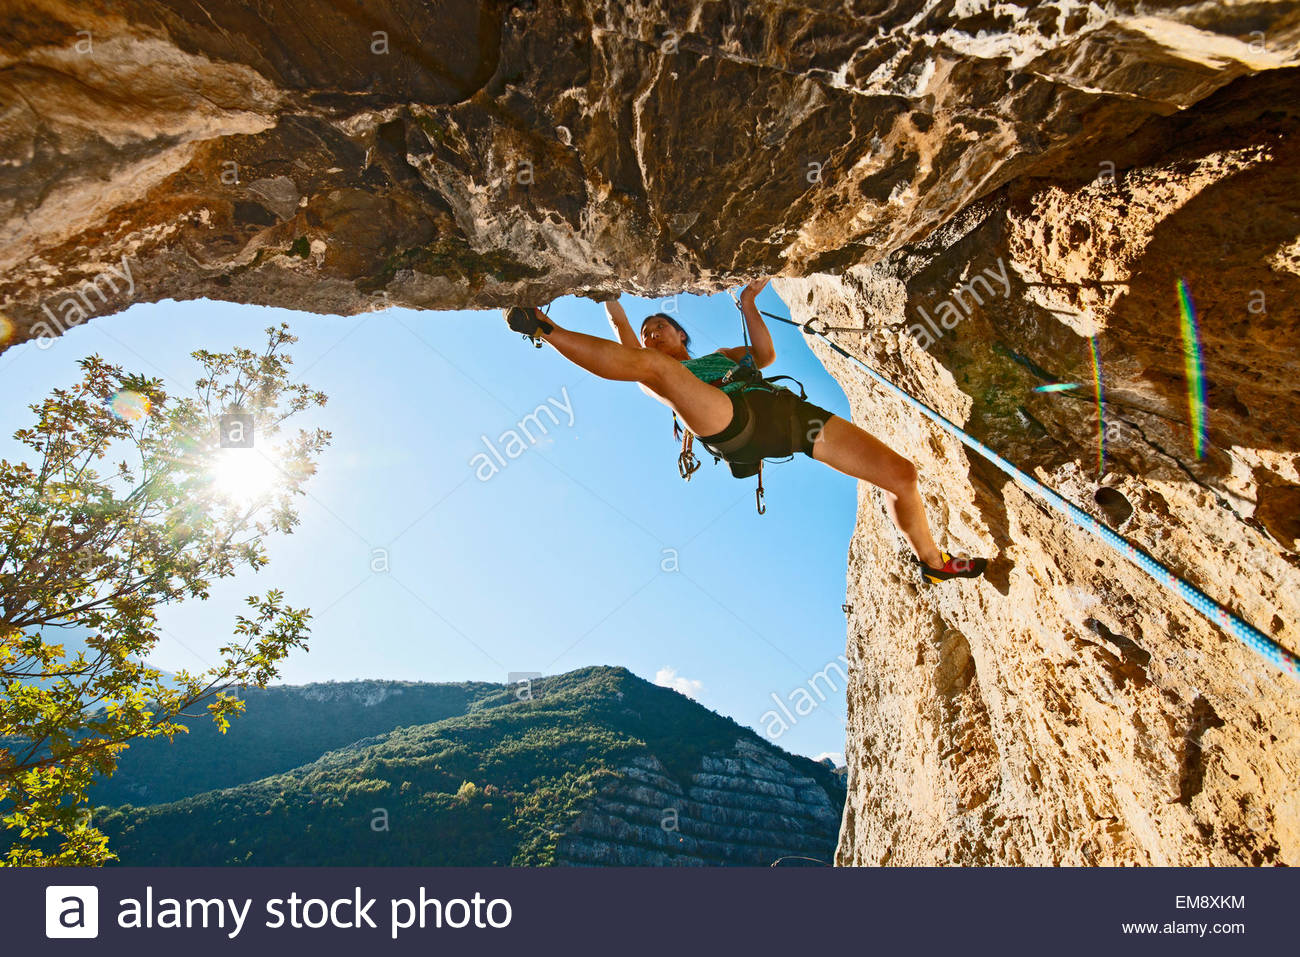 Female climber, climbing out of a cave with an old quarry in the background, Finale Ligure, Savona, Italy - Stock Image